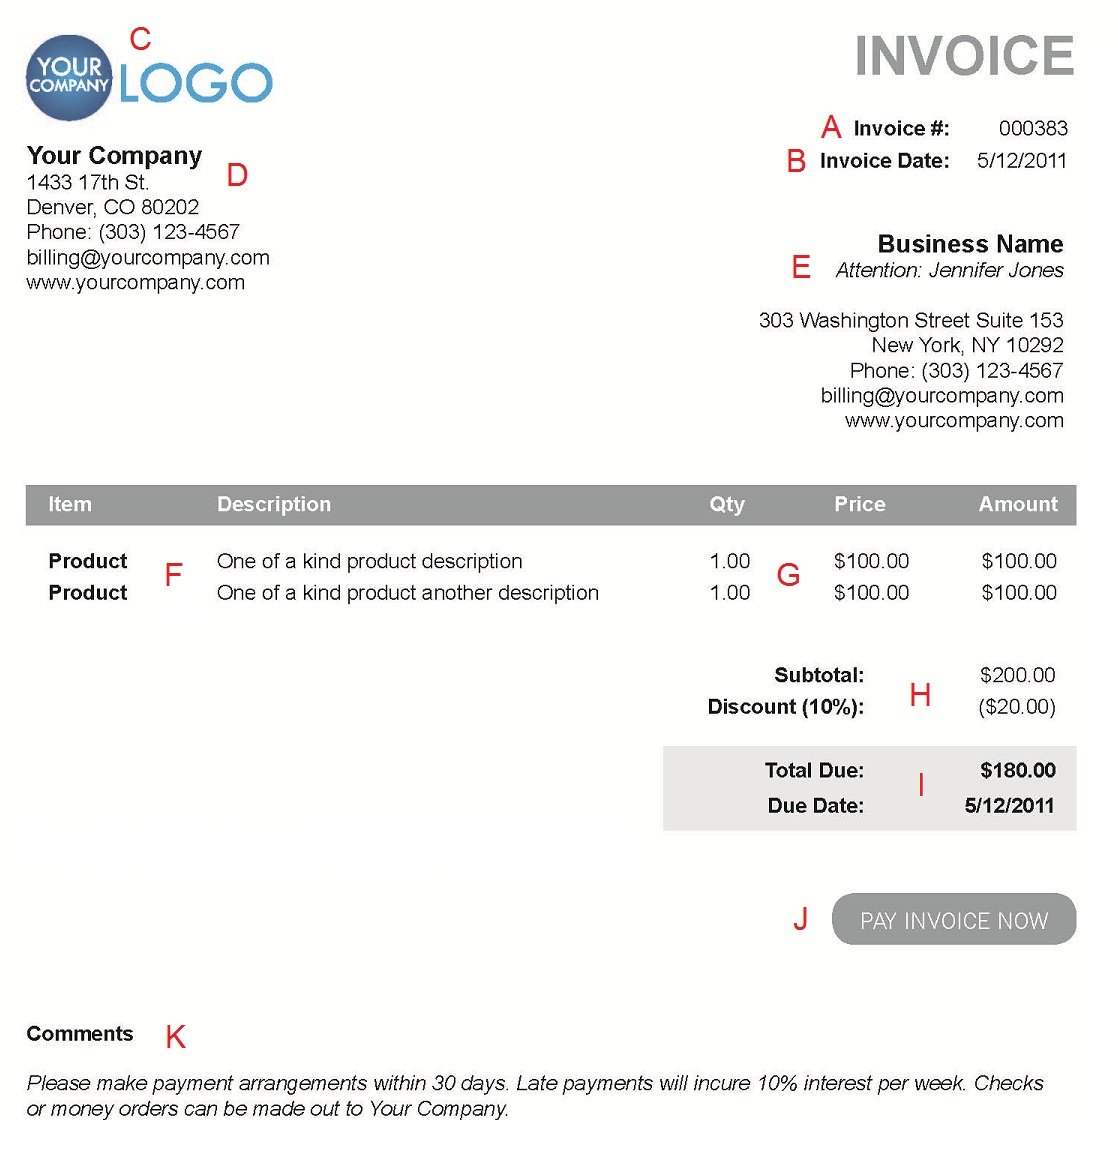 Ultrablogus  Gorgeous The  Different Sections Of An Electronic Payment Invoice With Handsome A  With Astonishing Invoice Billing Software Free Download Full Version Also Apple Invoicing Software In Addition Rent Invoice Format And Online Invoicing Tool As Well As Vehicle Sales Invoice Additionally Net Invoice Amount From Paysimplecom With Ultrablogus  Handsome The  Different Sections Of An Electronic Payment Invoice With Astonishing A  And Gorgeous Invoice Billing Software Free Download Full Version Also Apple Invoicing Software In Addition Rent Invoice Format From Paysimplecom